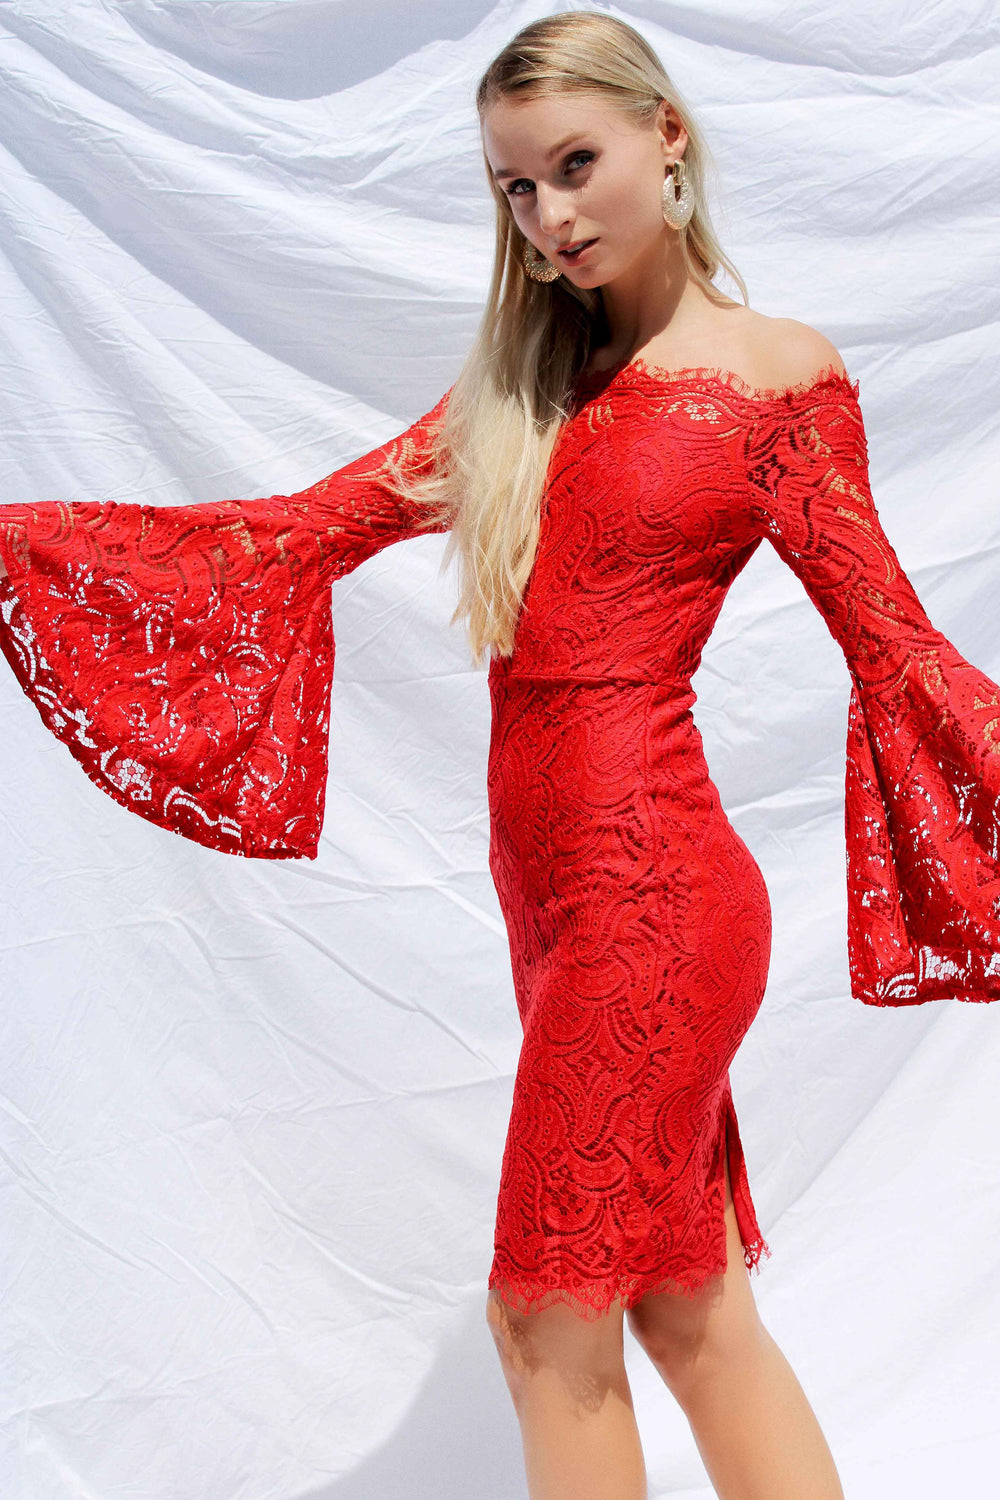 MIRELLA DRESS IN RED - Chic Le Frique